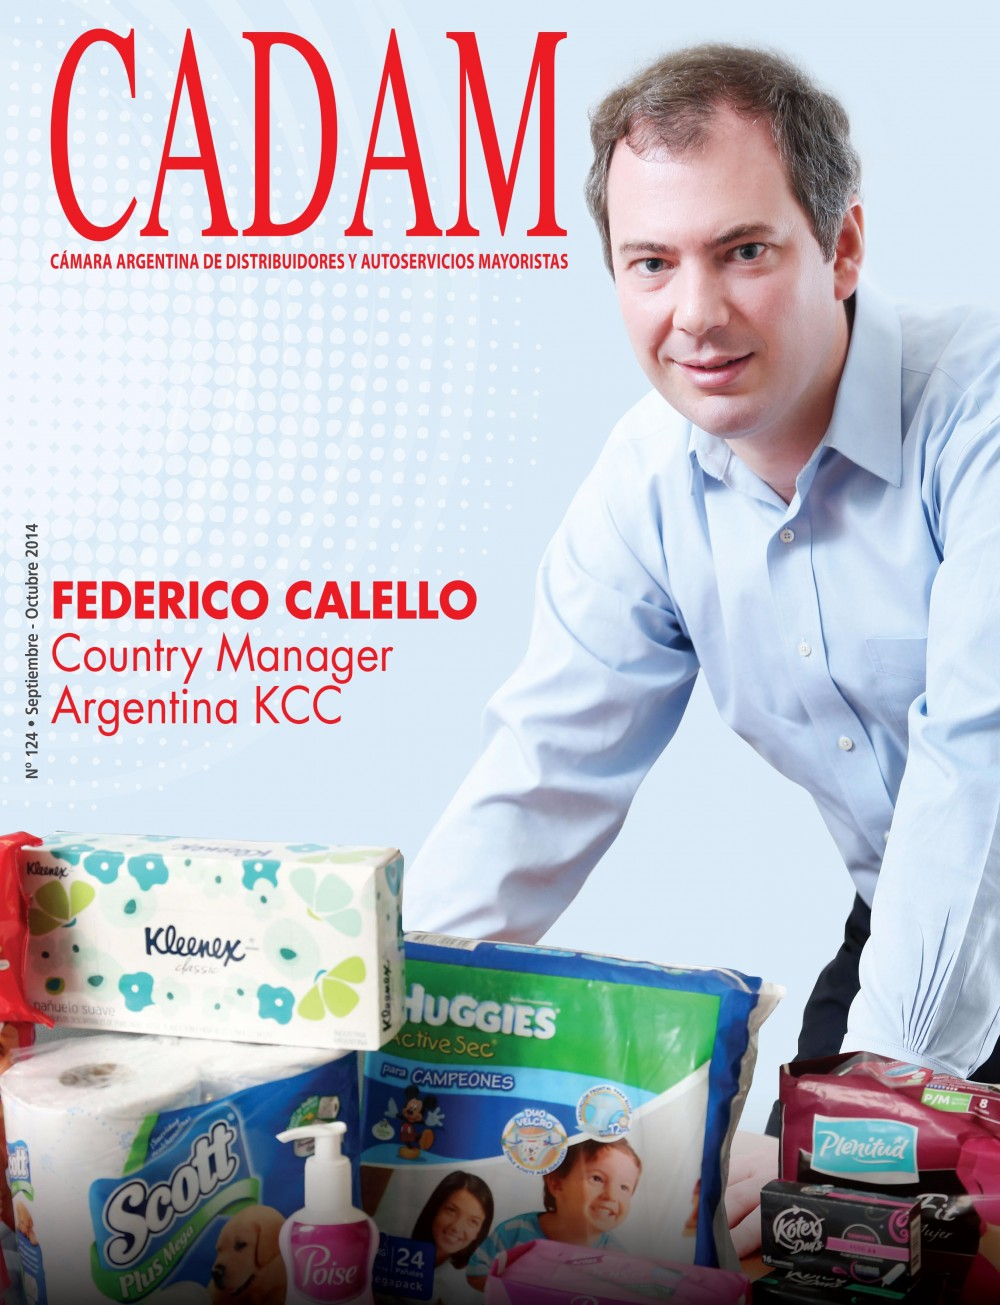 Federico Calello: Country Manager Argentina KCC